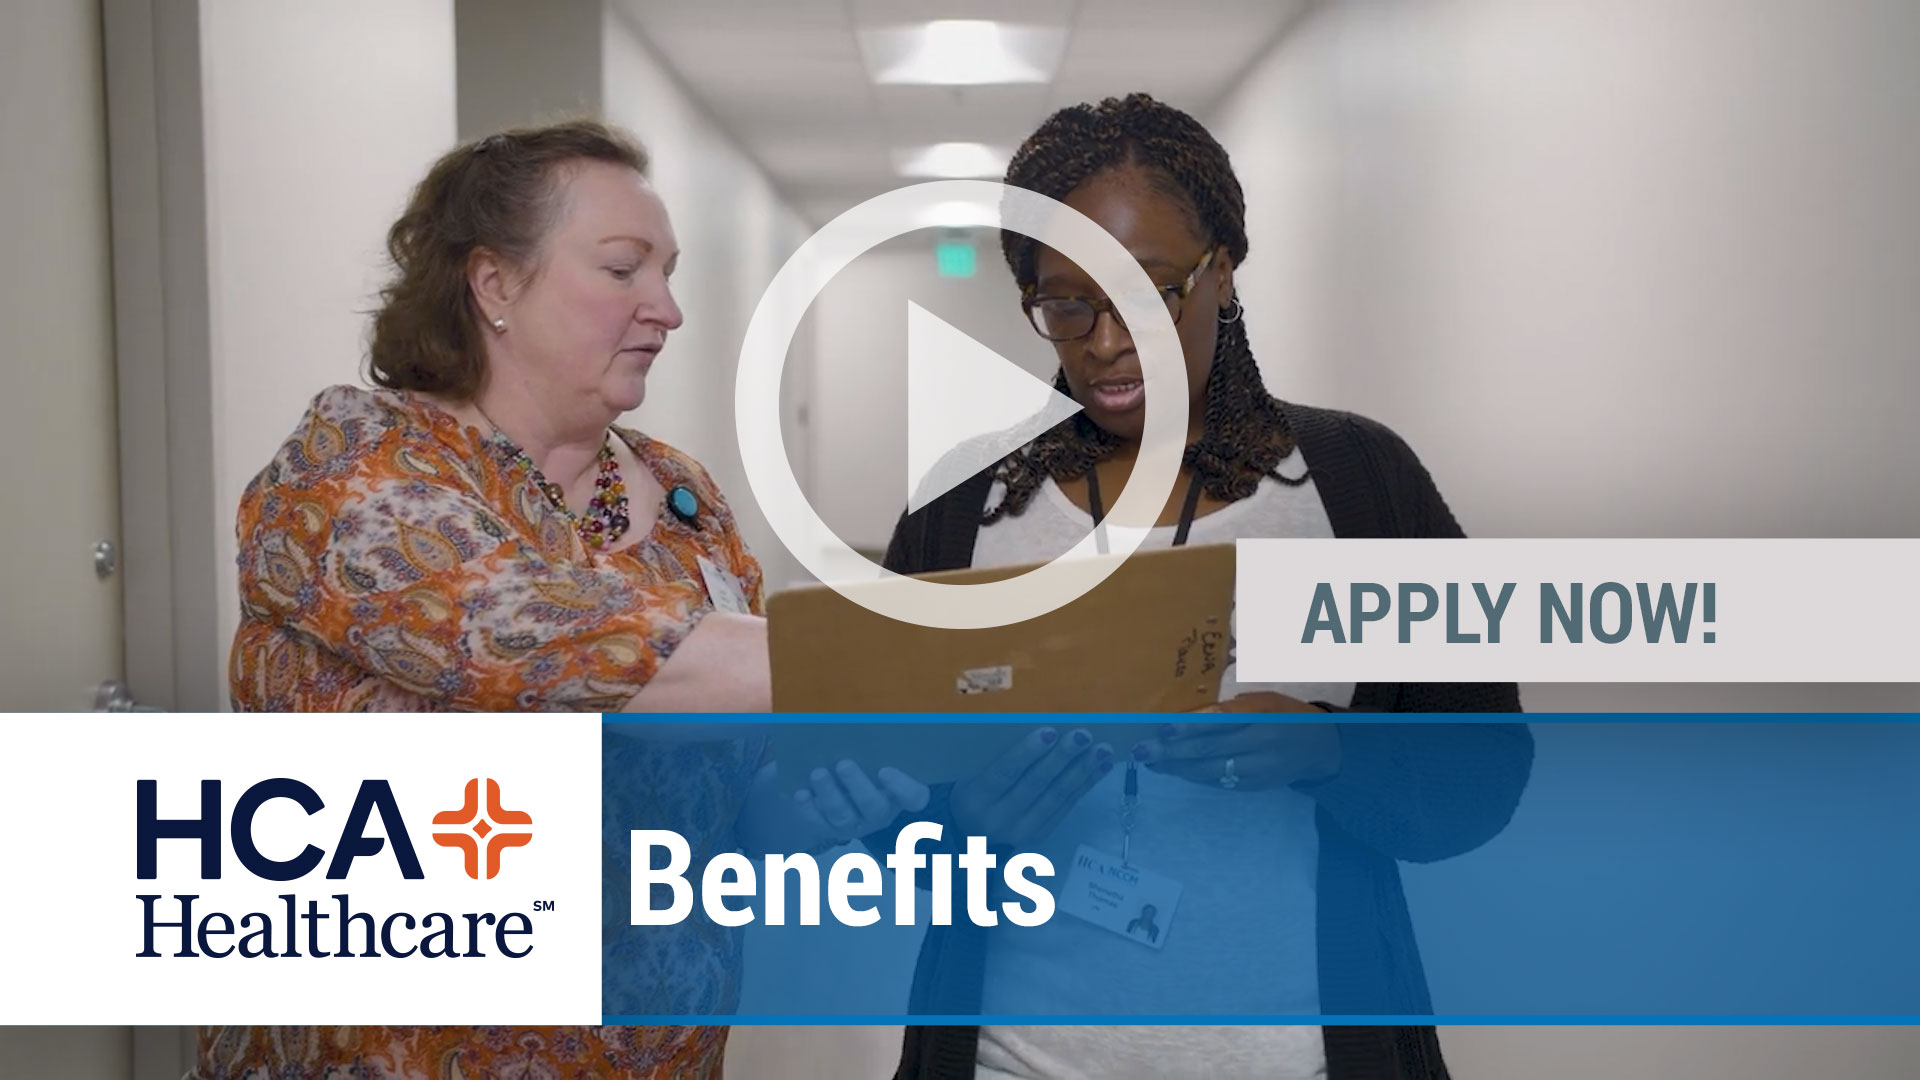 Watch our careers video for available job opening HCA Healthcare Benefits in Multiple Locations Nationwide